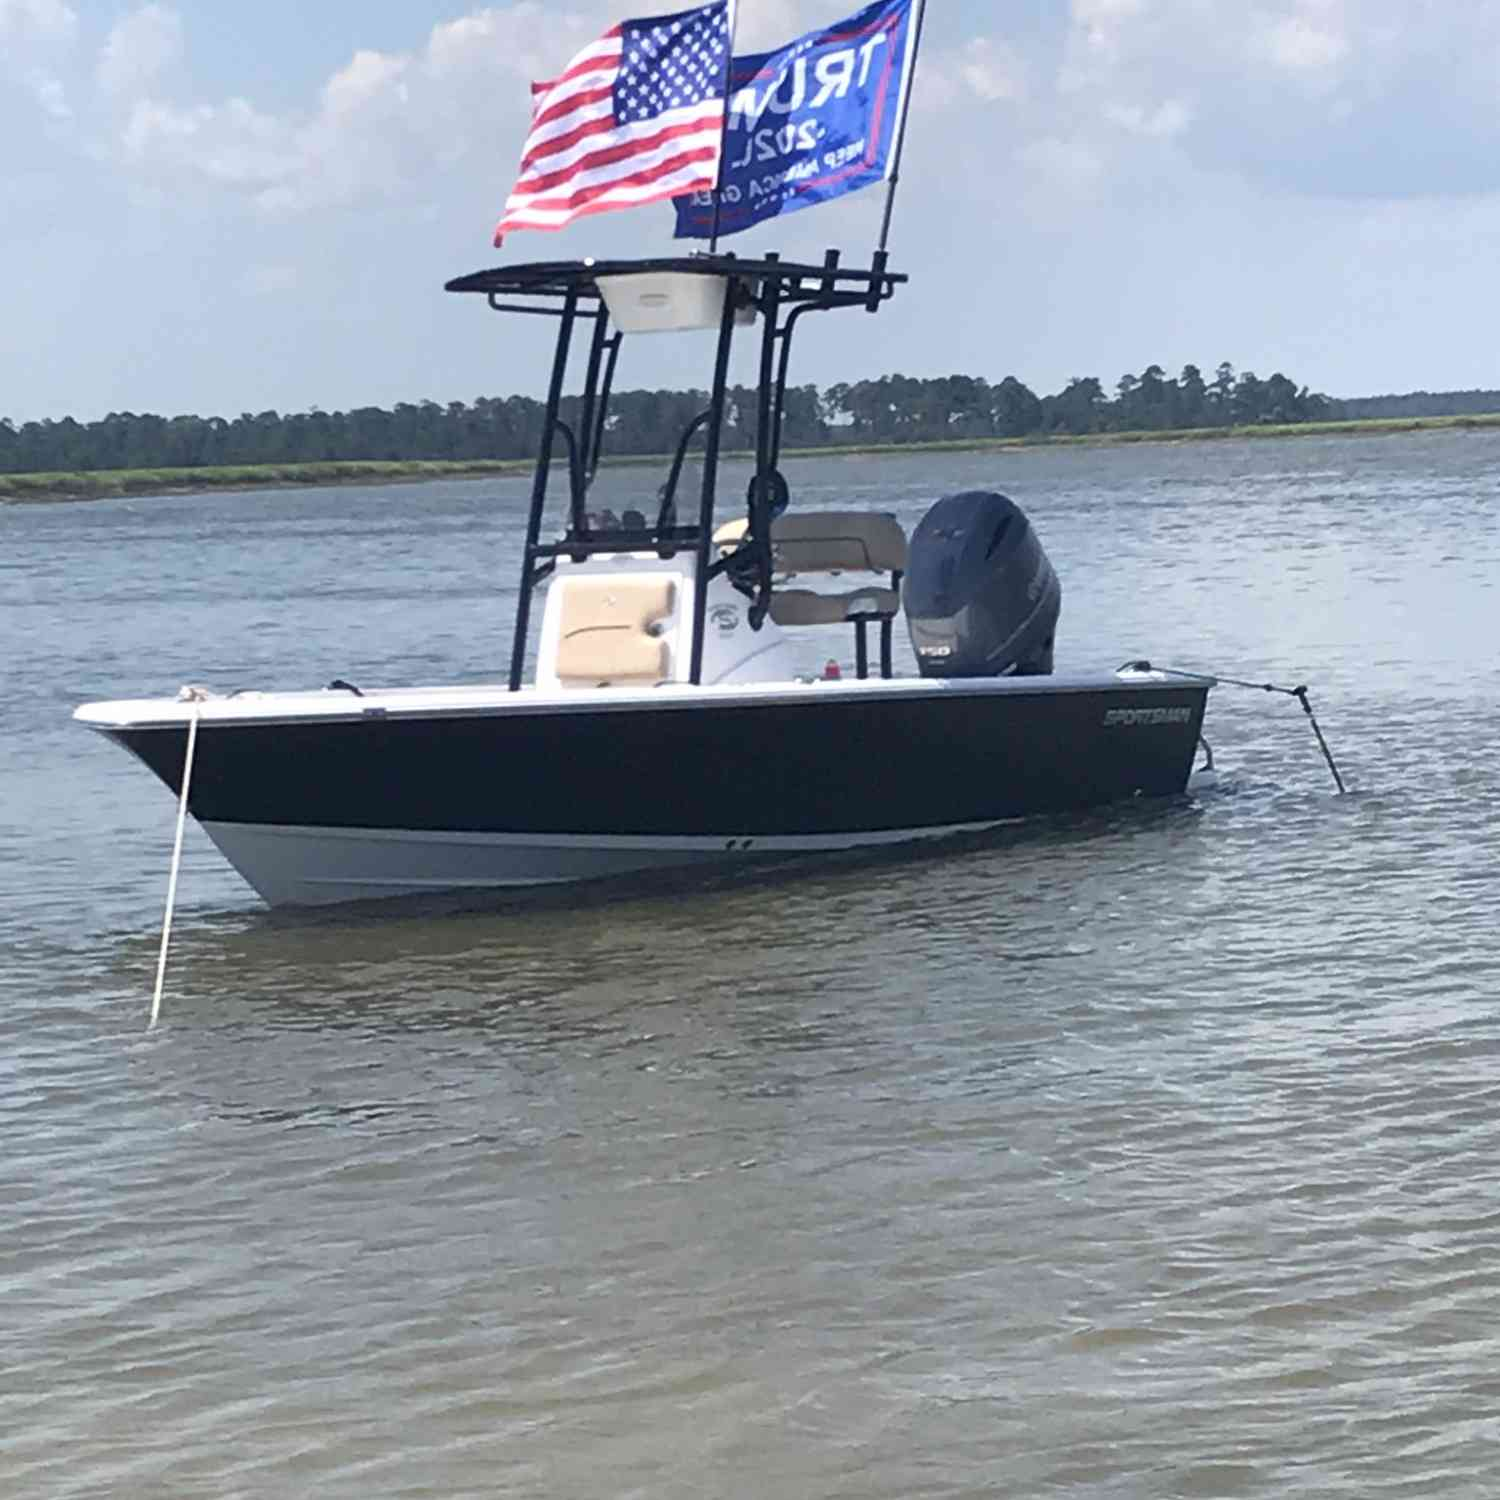 Title: Masters - On board their Sportsman Masters 207 Bay Boat - Location: Beaufort, South Carolina. Participating in the Photo Contest #SportsmanAugust2020